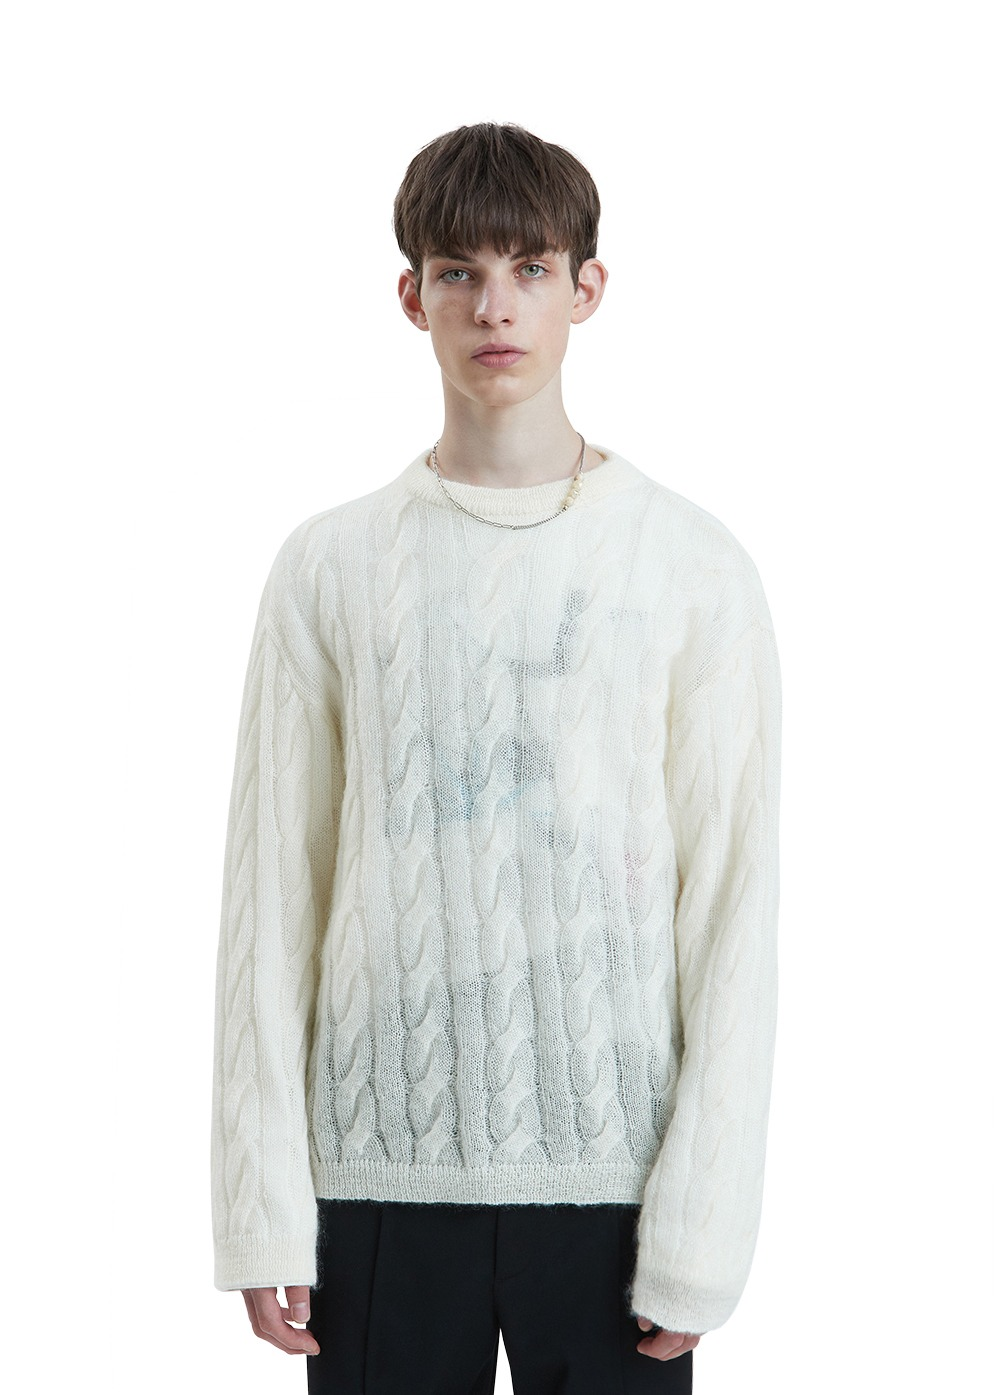 LIFUL KID MOHAIR CABLE KNIT SWEATER ivory